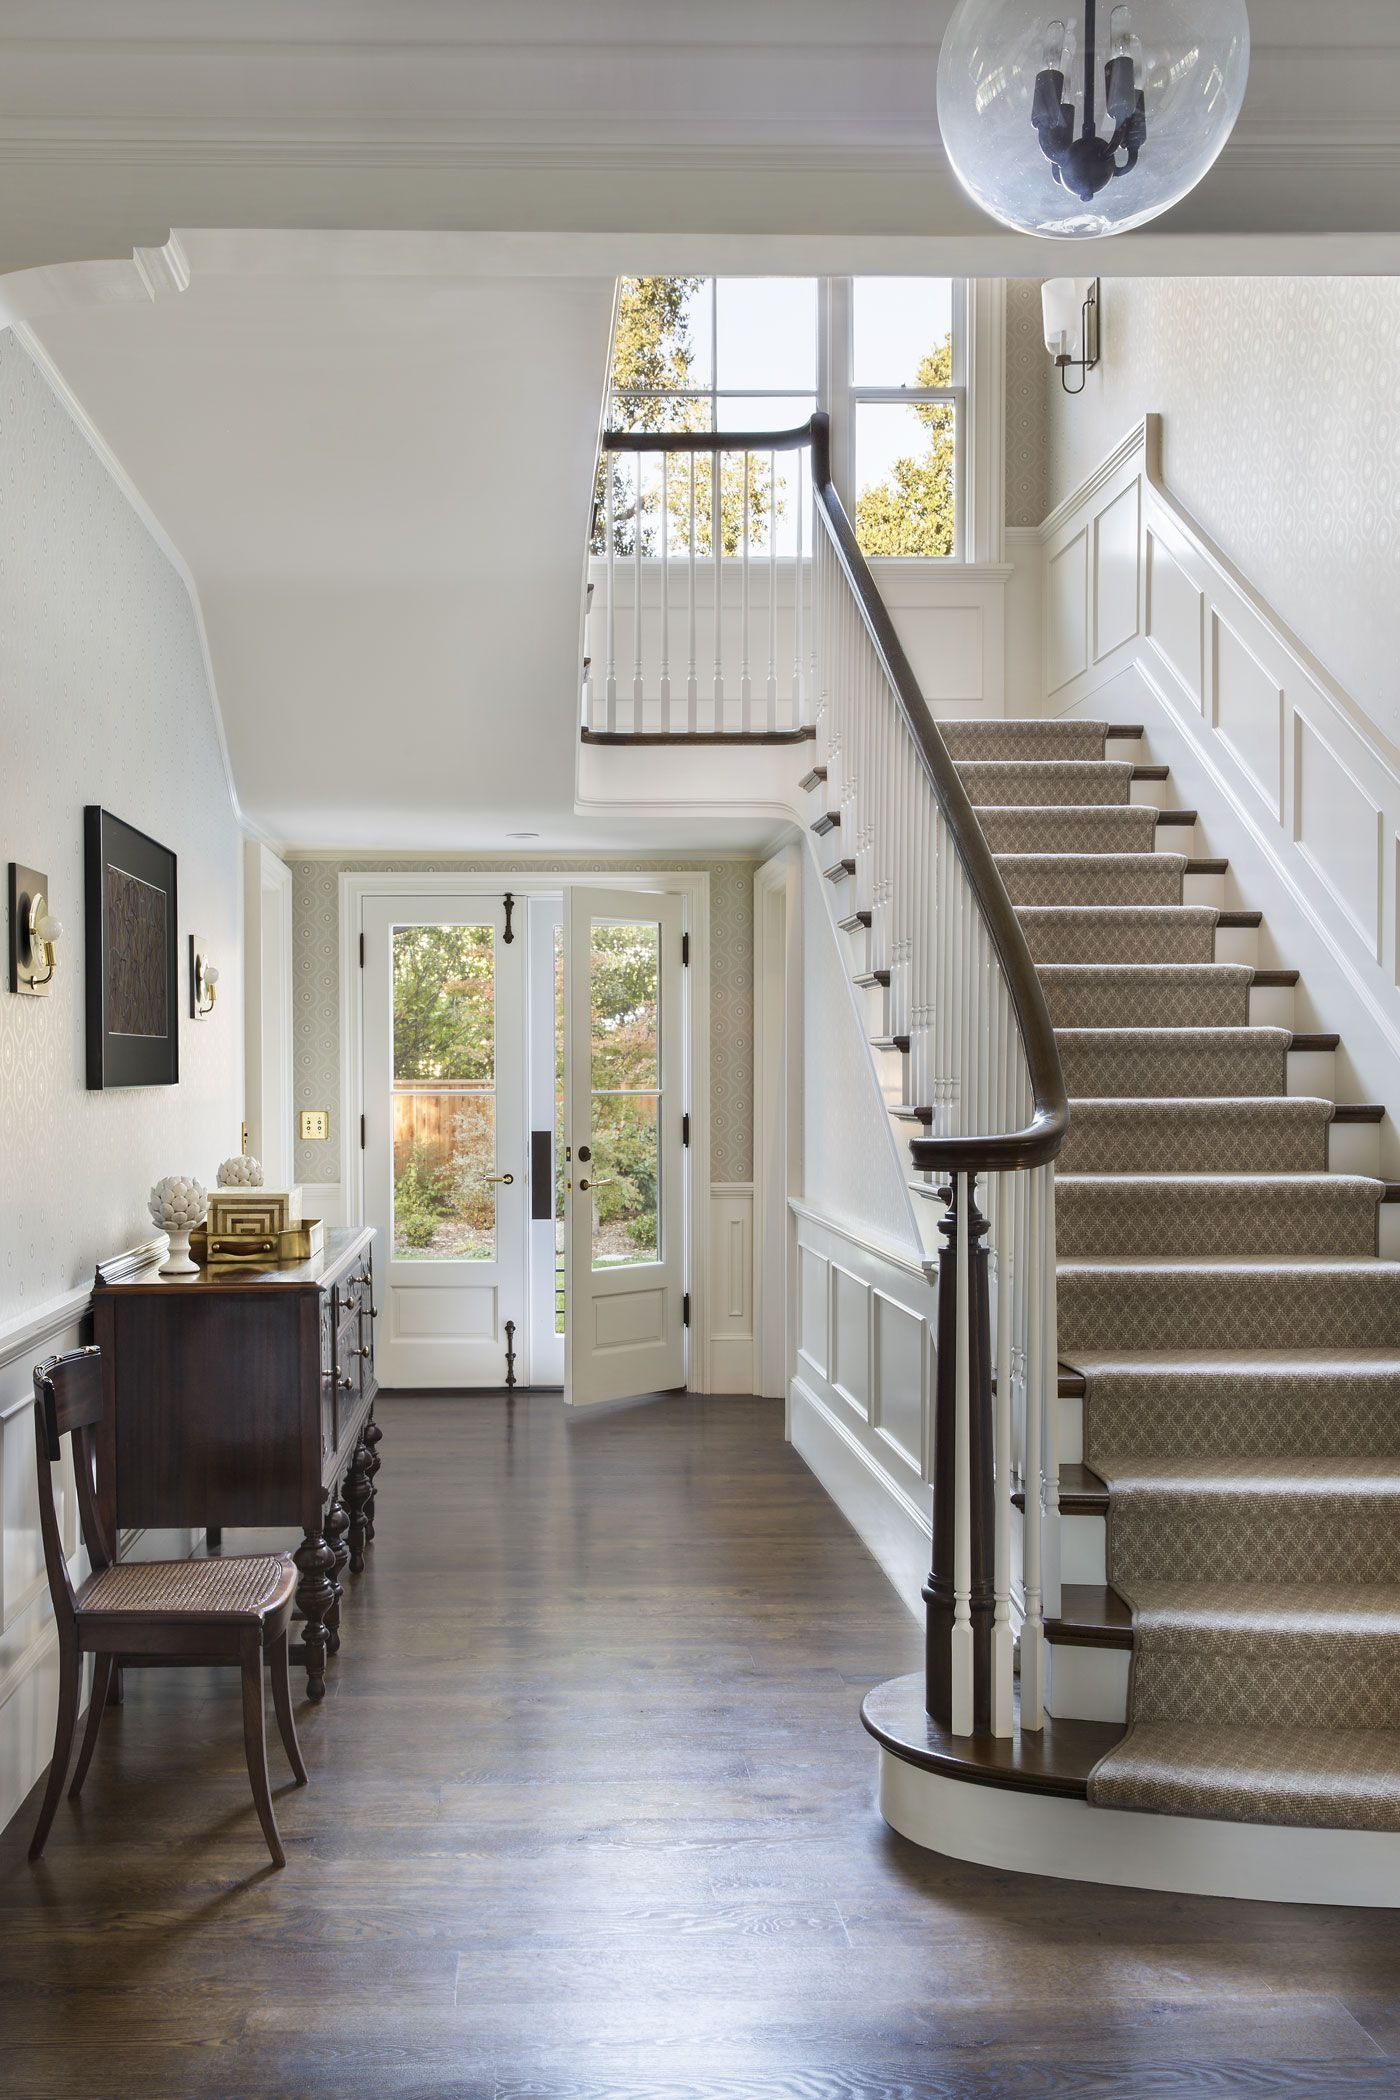 25 Stunning Carpeted Staircase Ideas Most Beautiful Staircase | Inside Home Stairs Design | Stunning | Amazing | Tiny | Normal | Staircase Design